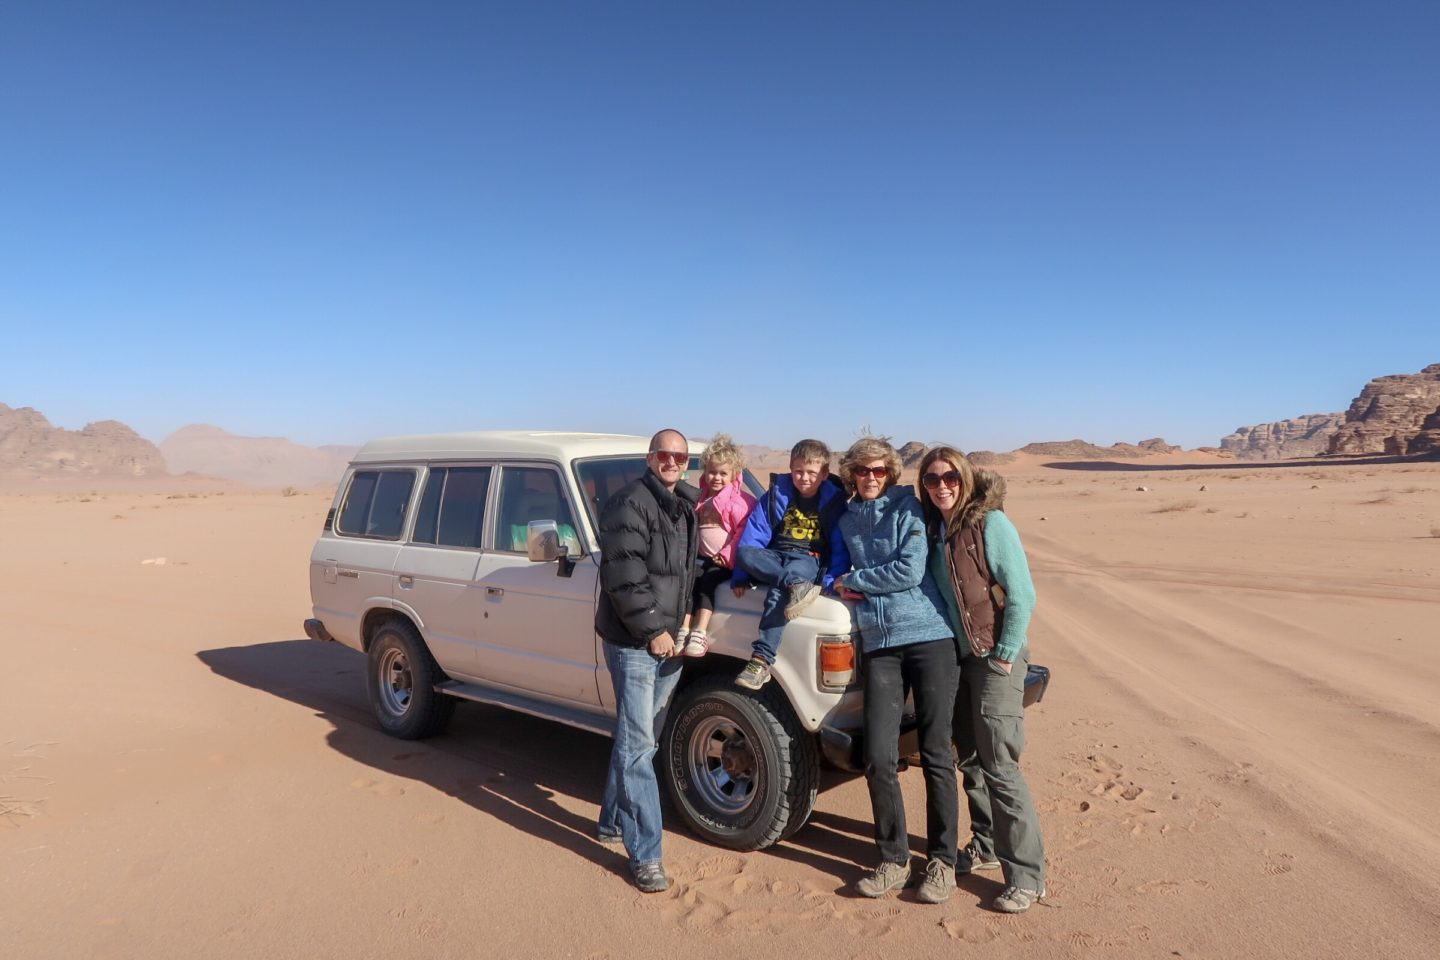 How to have an epic family holiday - The Wanderlusters by a Land Cruiser in Wadi Rum, Jordan